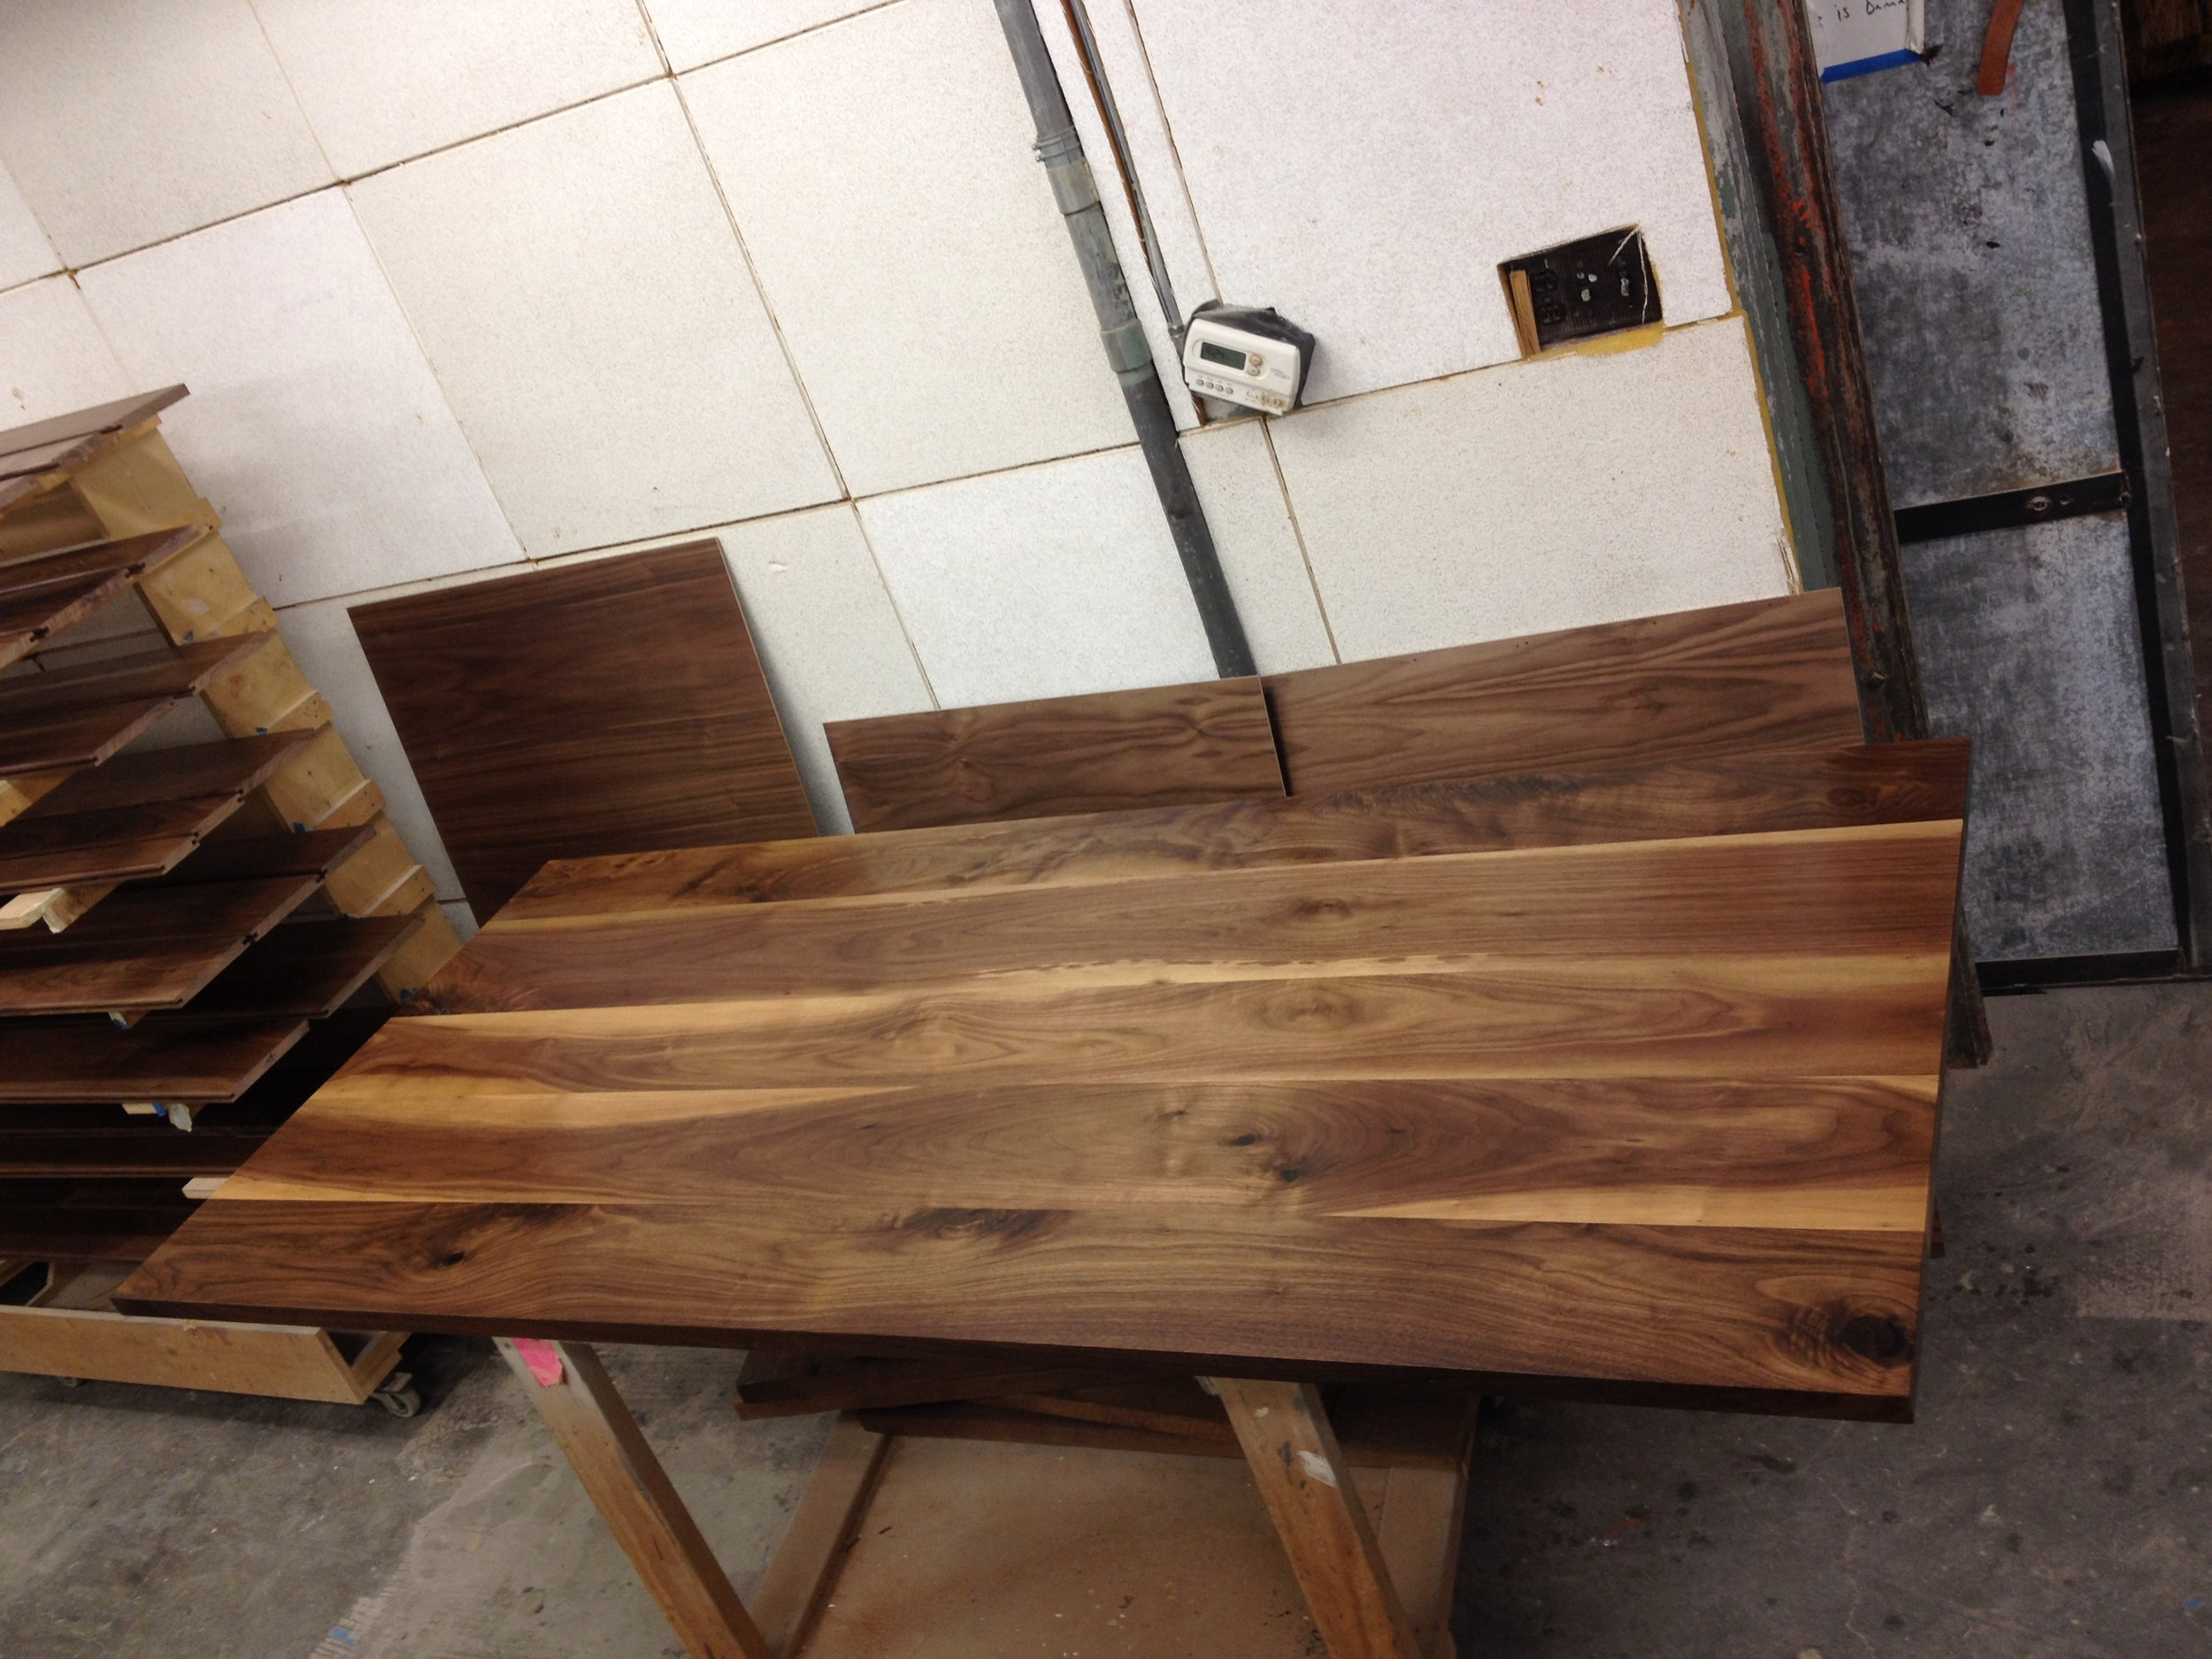 Walnut table top for Interior Design Fair